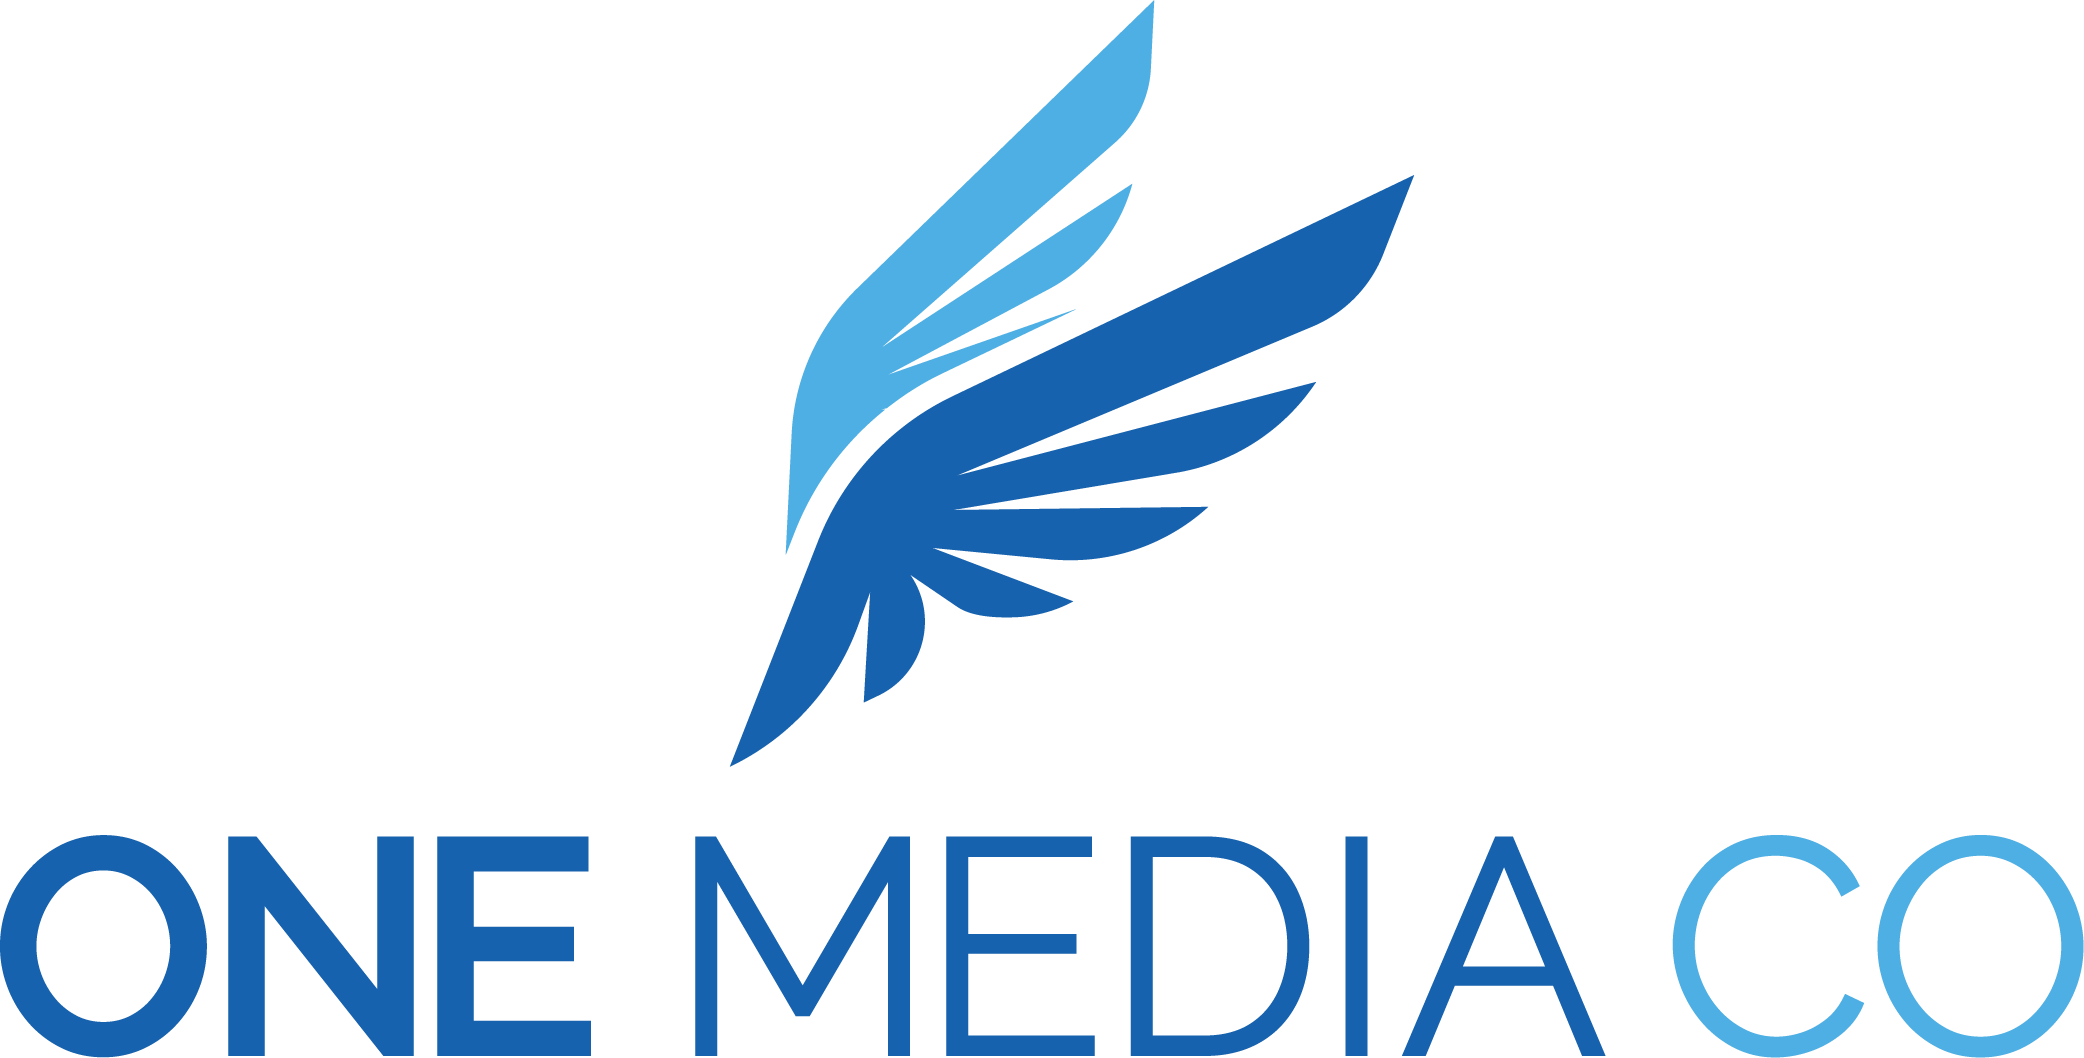 One Media Co